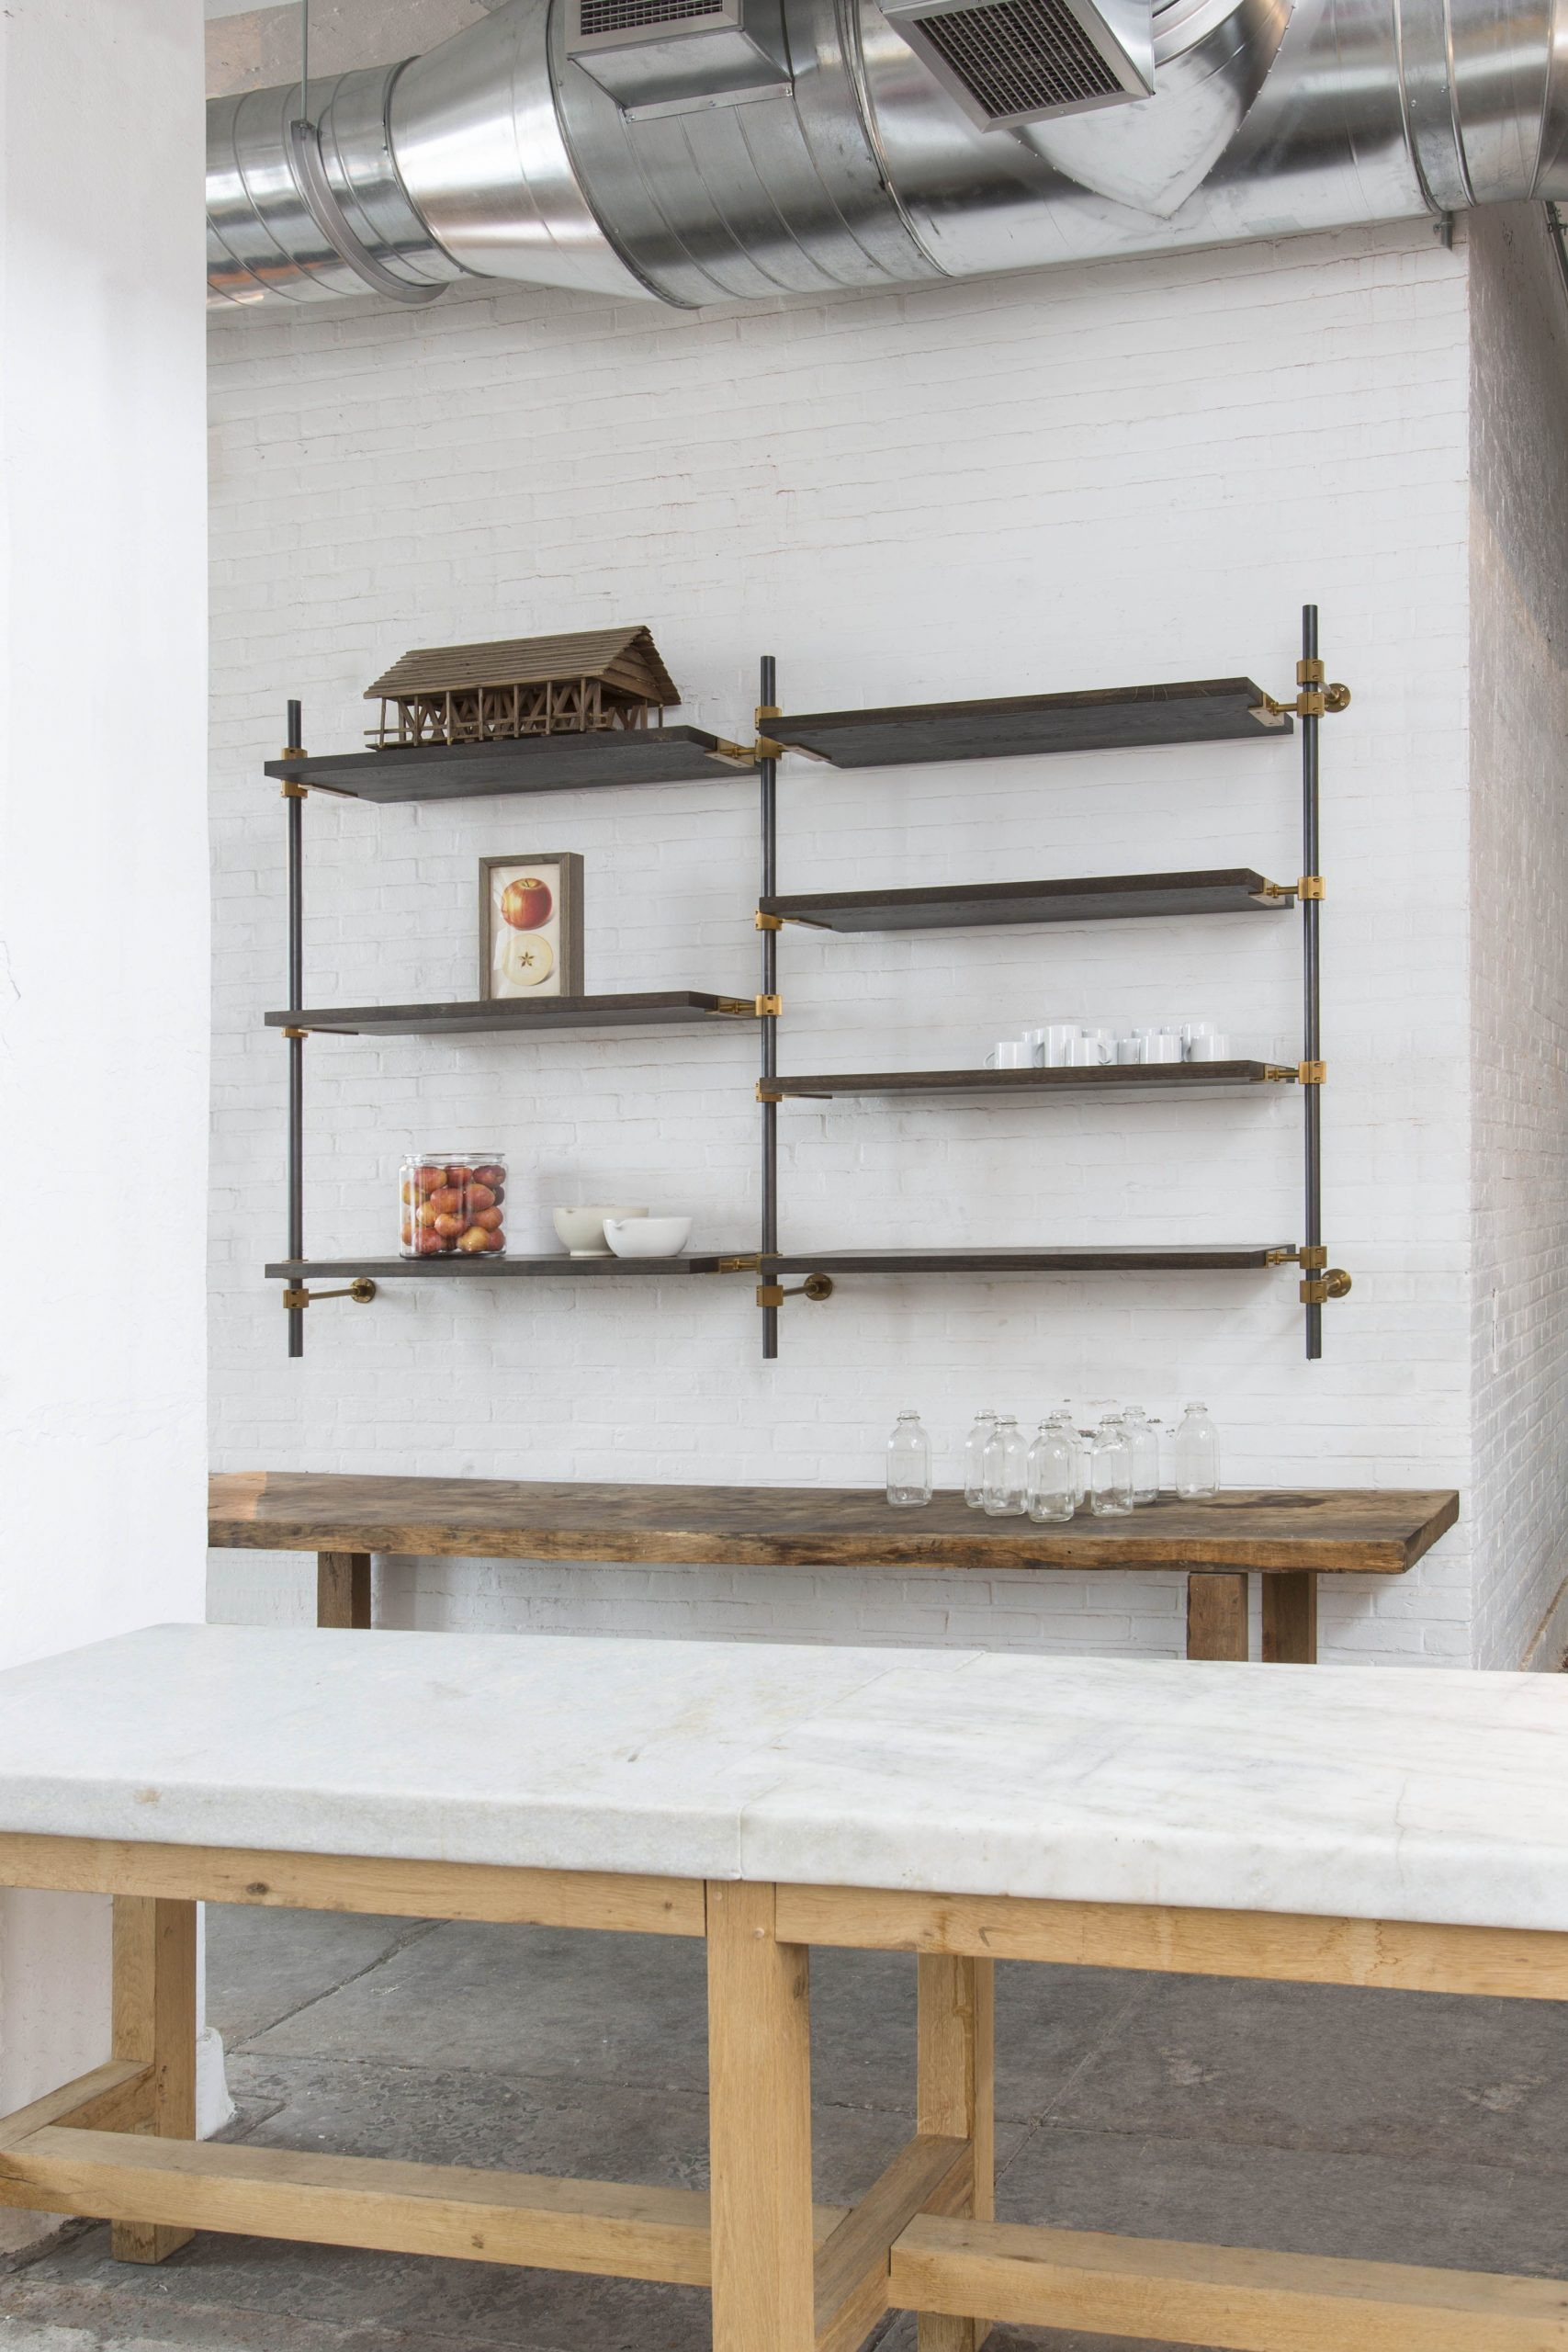 Wall Mounted Shelving Systems Canada mercial scaled